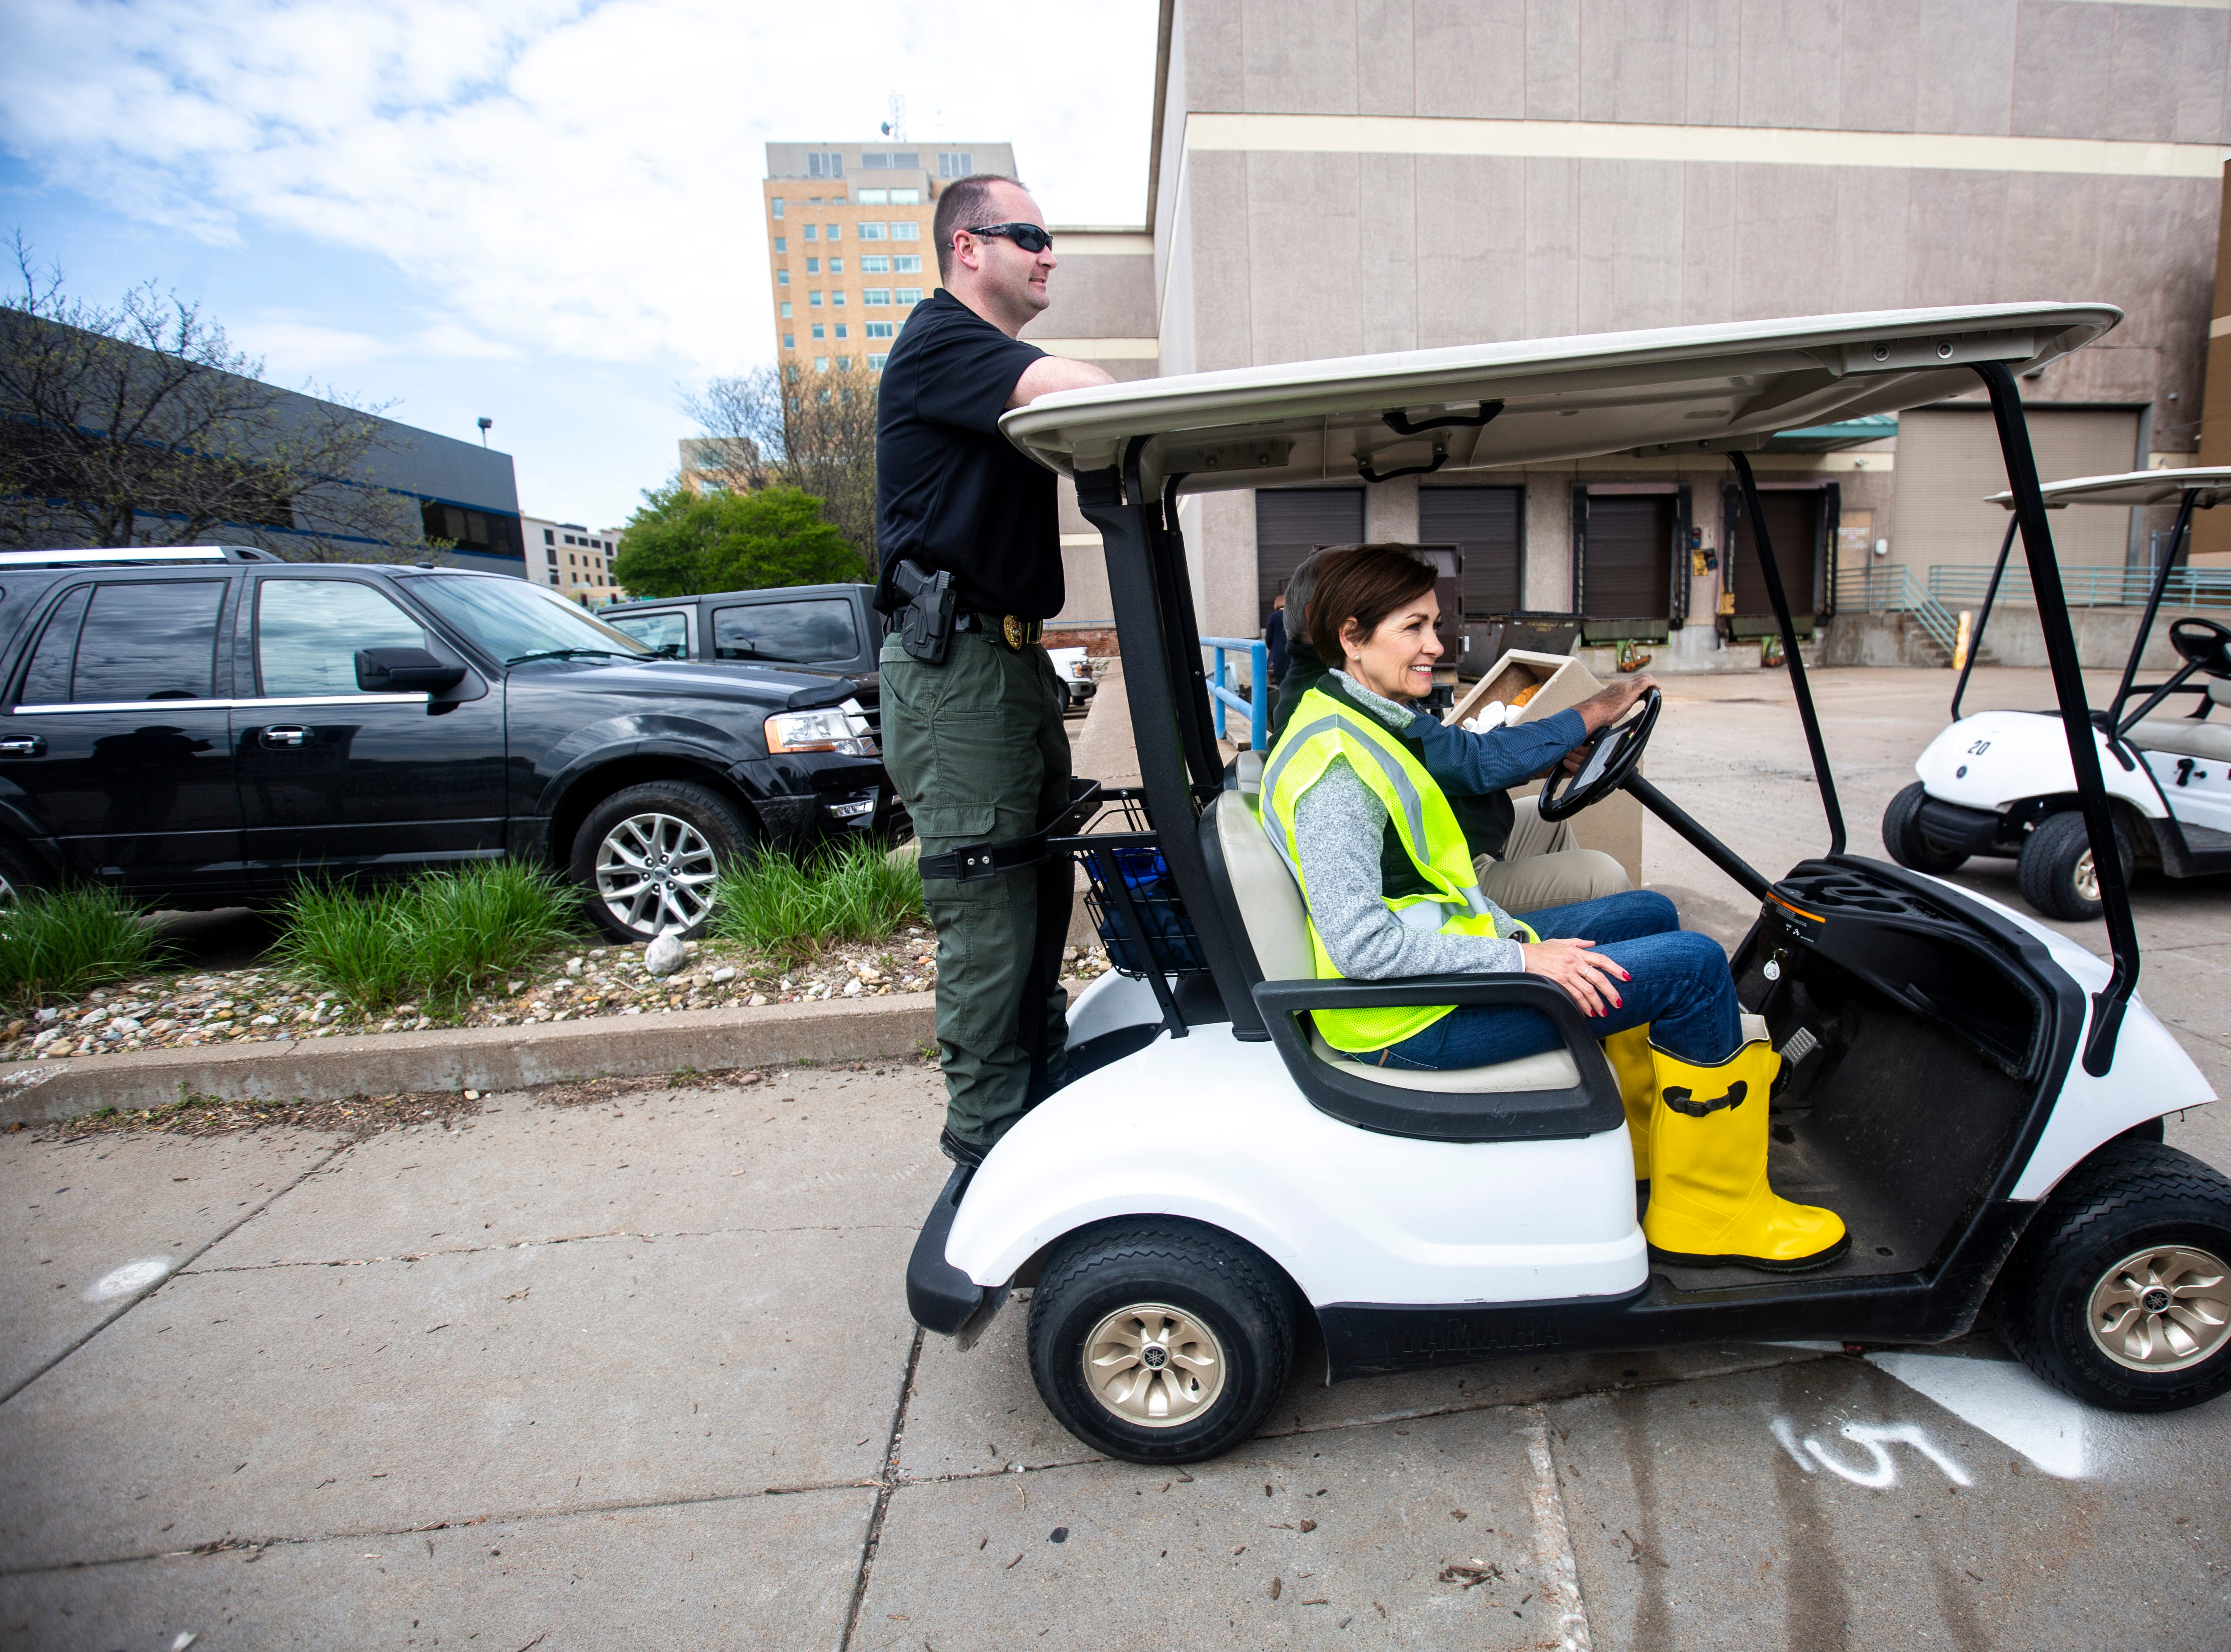 Iowa Gov. Kim Reynolds, gets a ride in a golf cart, while touring areas impacted by floodwater, Friday, May 3, 2019, in downtown Davenport, Iowa.